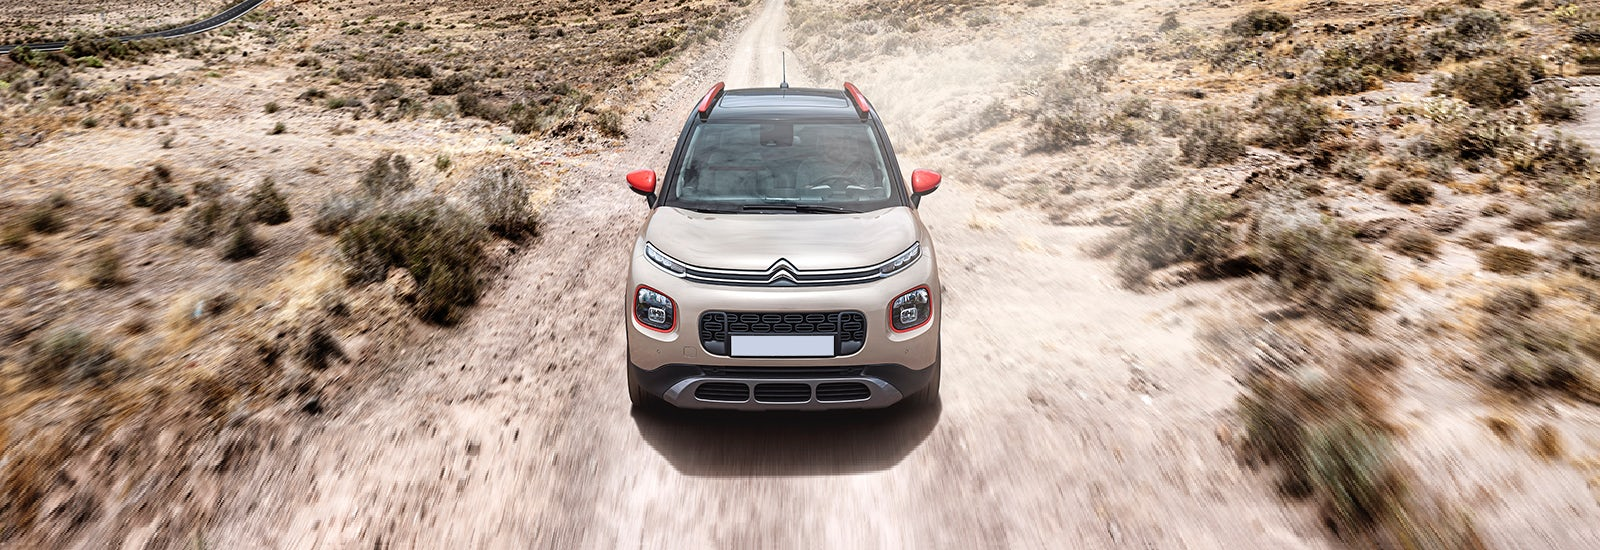 2017 citroen c3 aircross price specs release date carwow. Black Bedroom Furniture Sets. Home Design Ideas